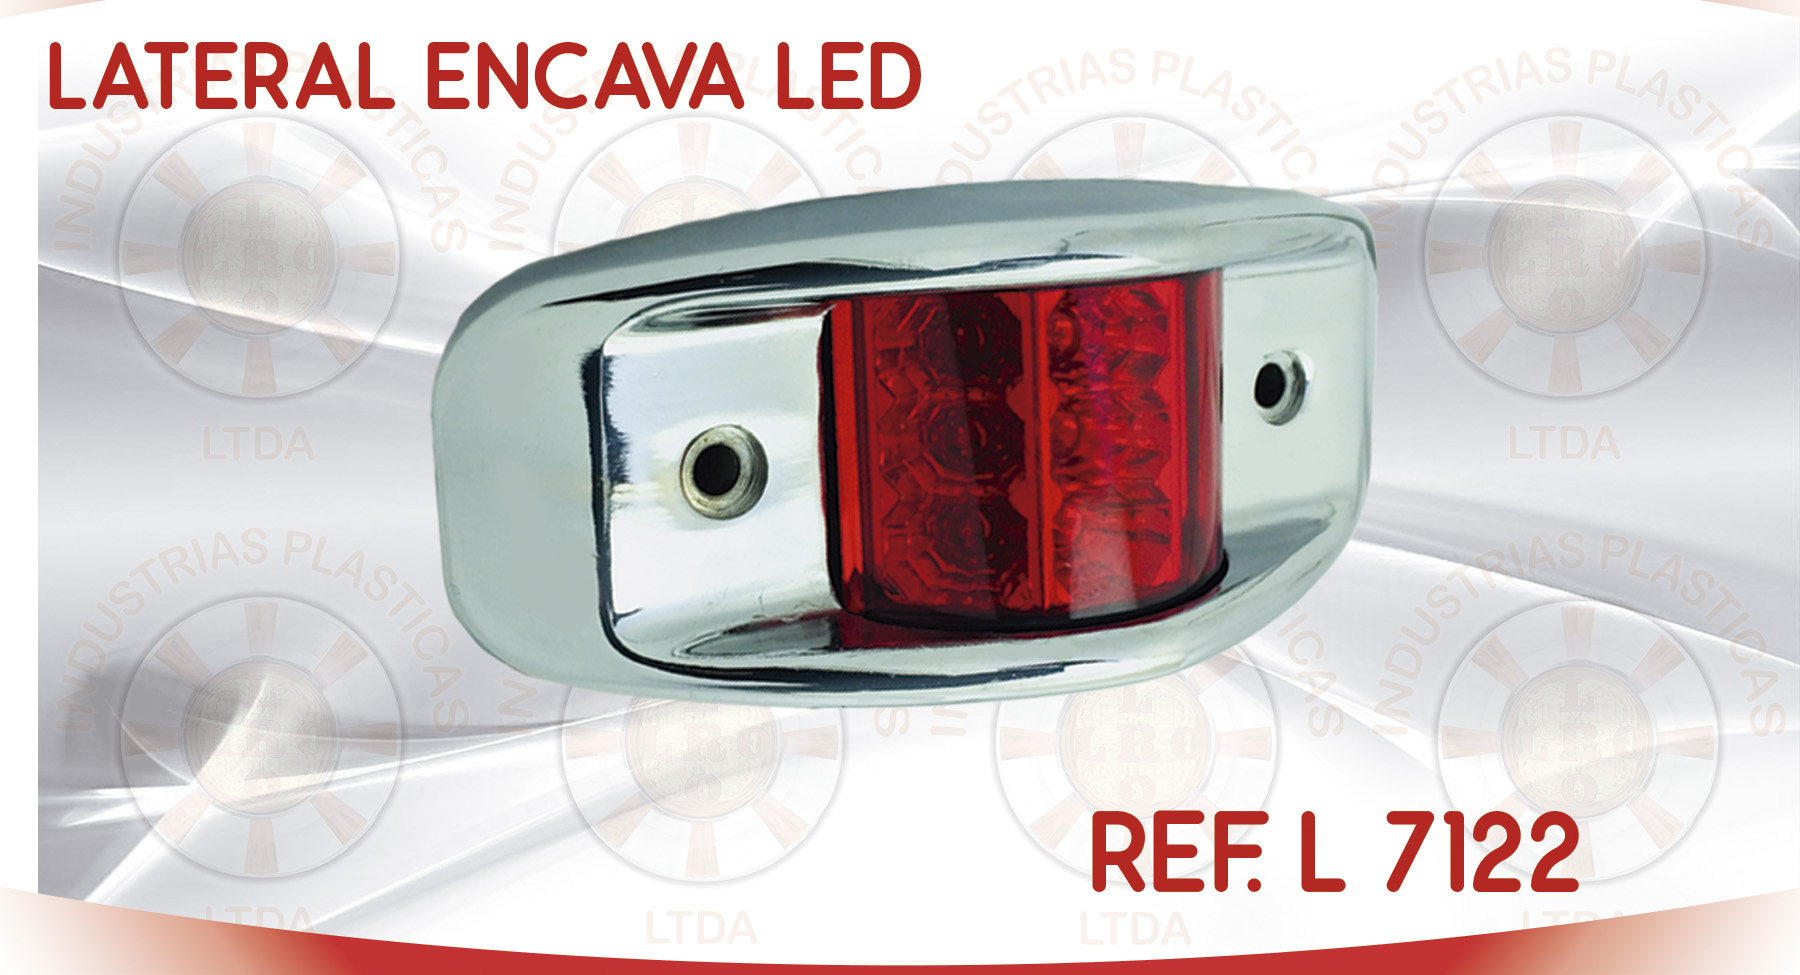 L 7122 LATERAL ENCAVA LED